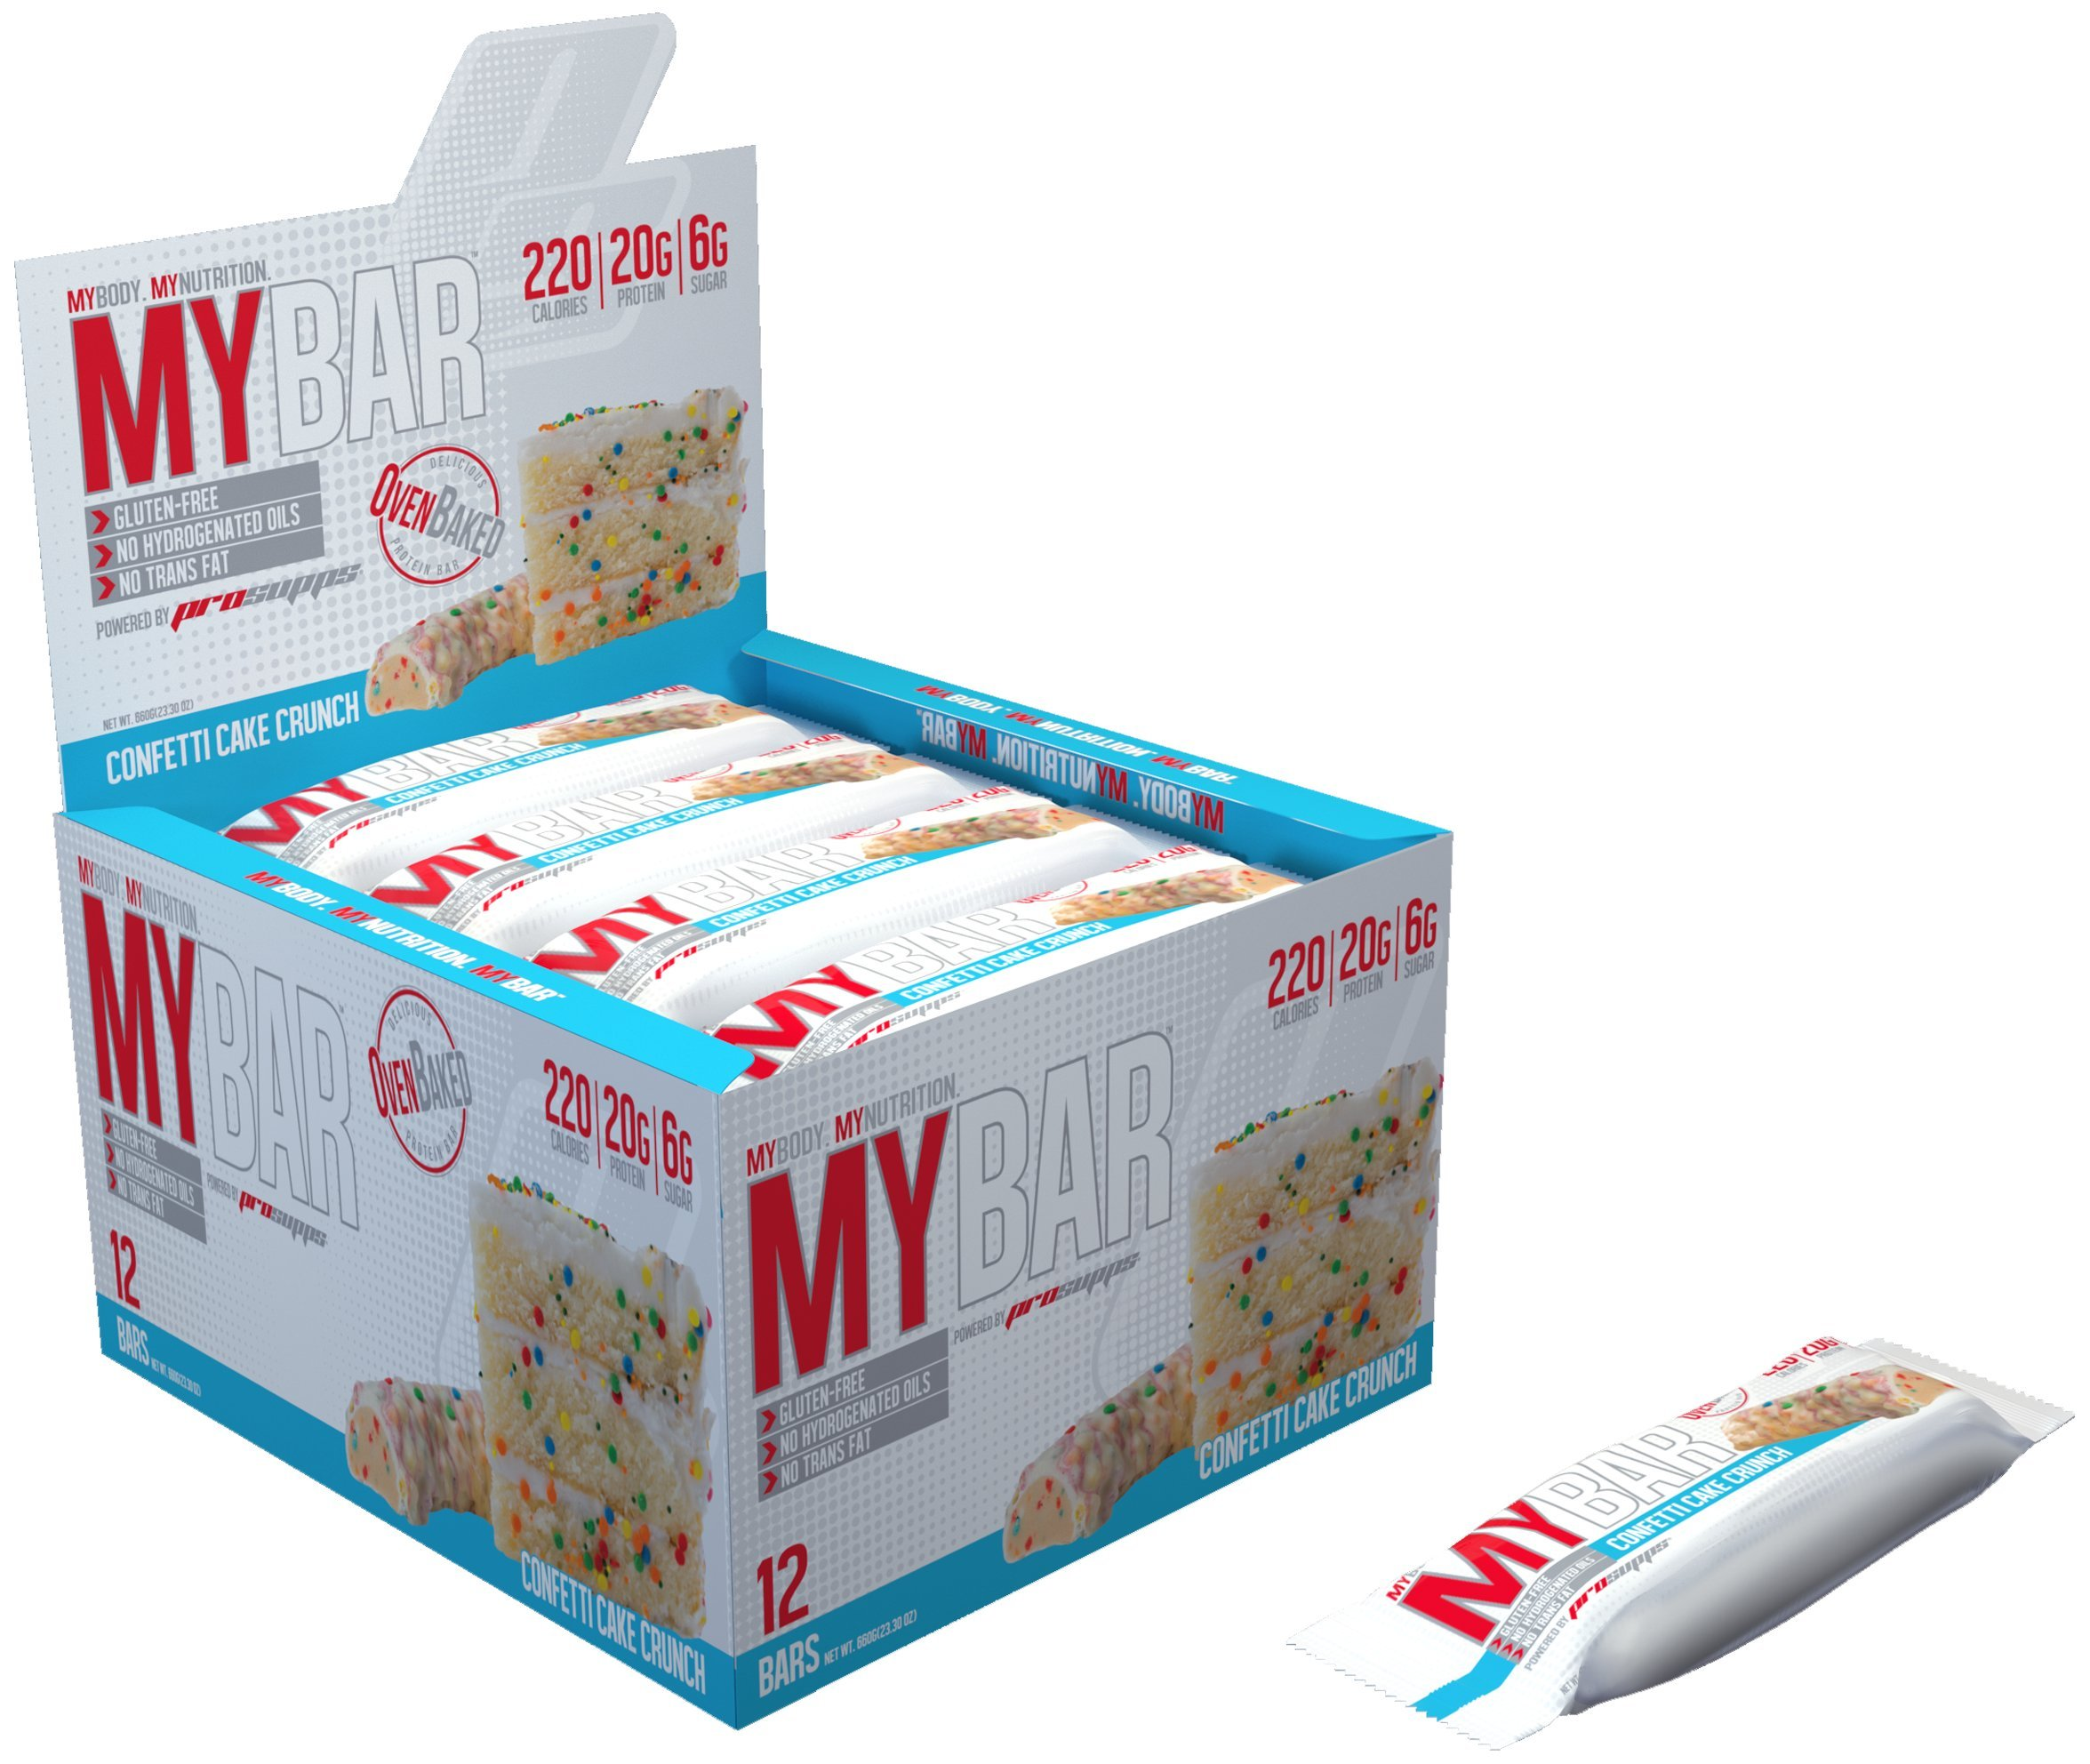 Pro Supps MYBAR Delicious Oven Baked Protein Bar (Confetti Cake Crunch), 20g Protein, Only 6g Sugar, Gluten-free, No Trans Fat, Healthy on-the-go Snack. 12 Count, Net WT 1.94 ounces